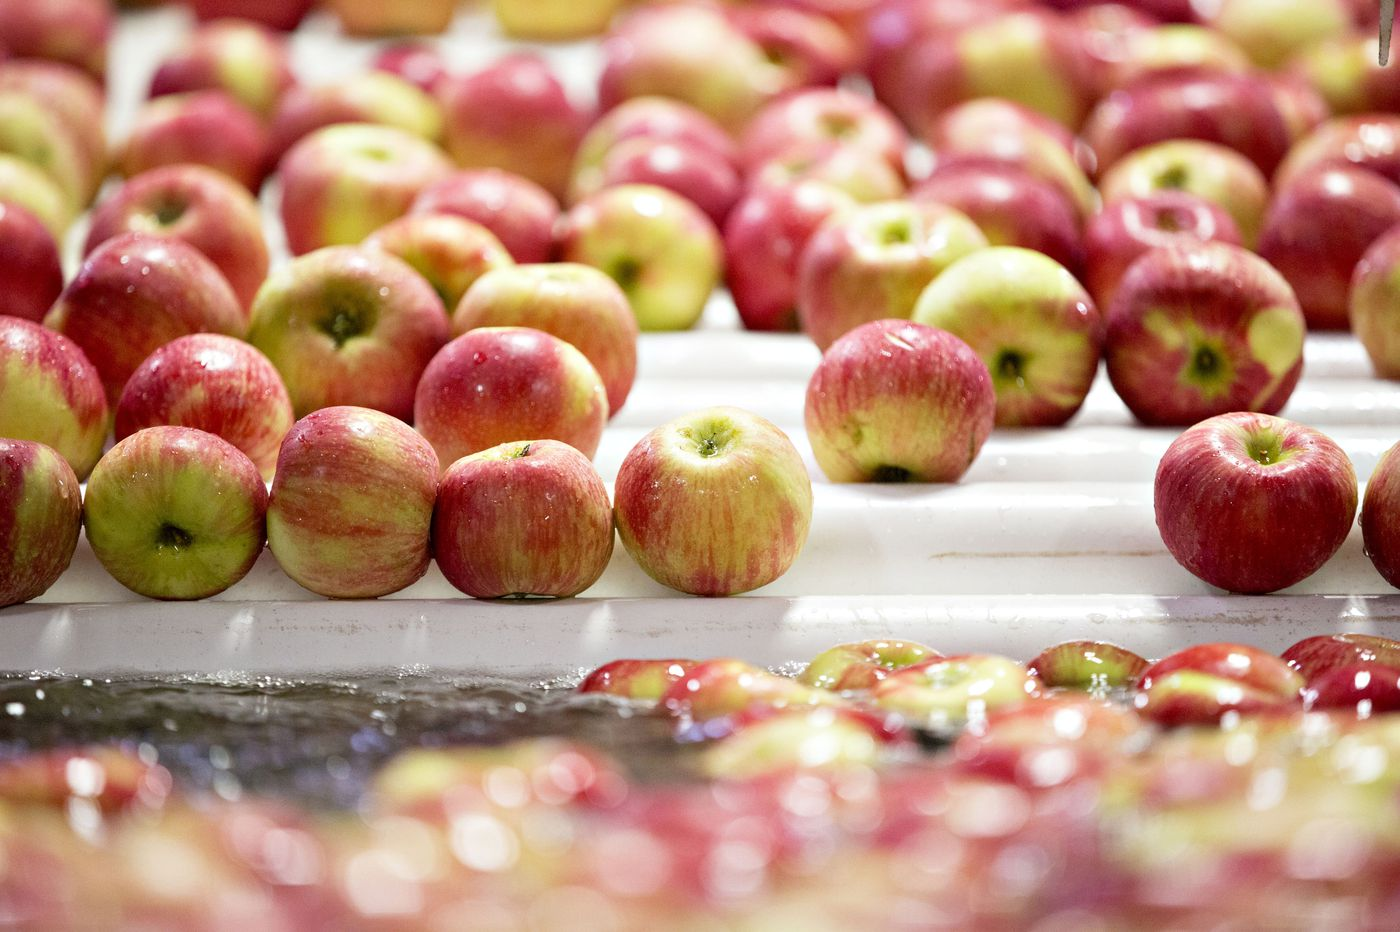 The curse of the Honeycrisp apple